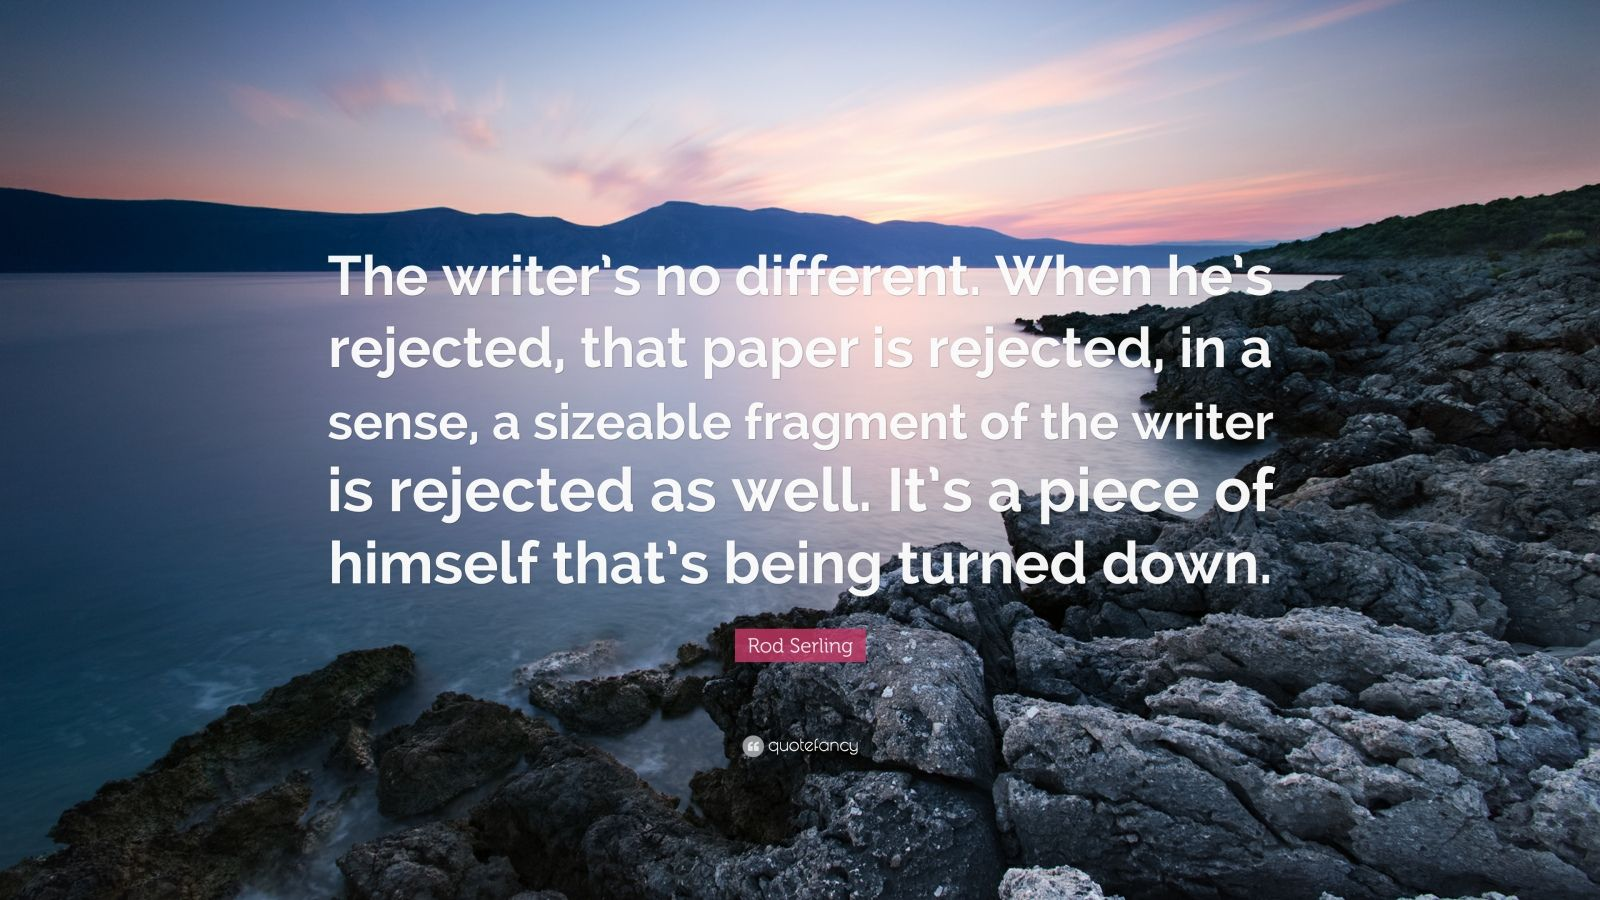 """Rod Serling Quote: """"The writer's no different. When he's rejected, that paper is rejected, in a sense, a sizeable fragment of the writer is rejected as well. It's a piece of himself that's being turned down."""""""